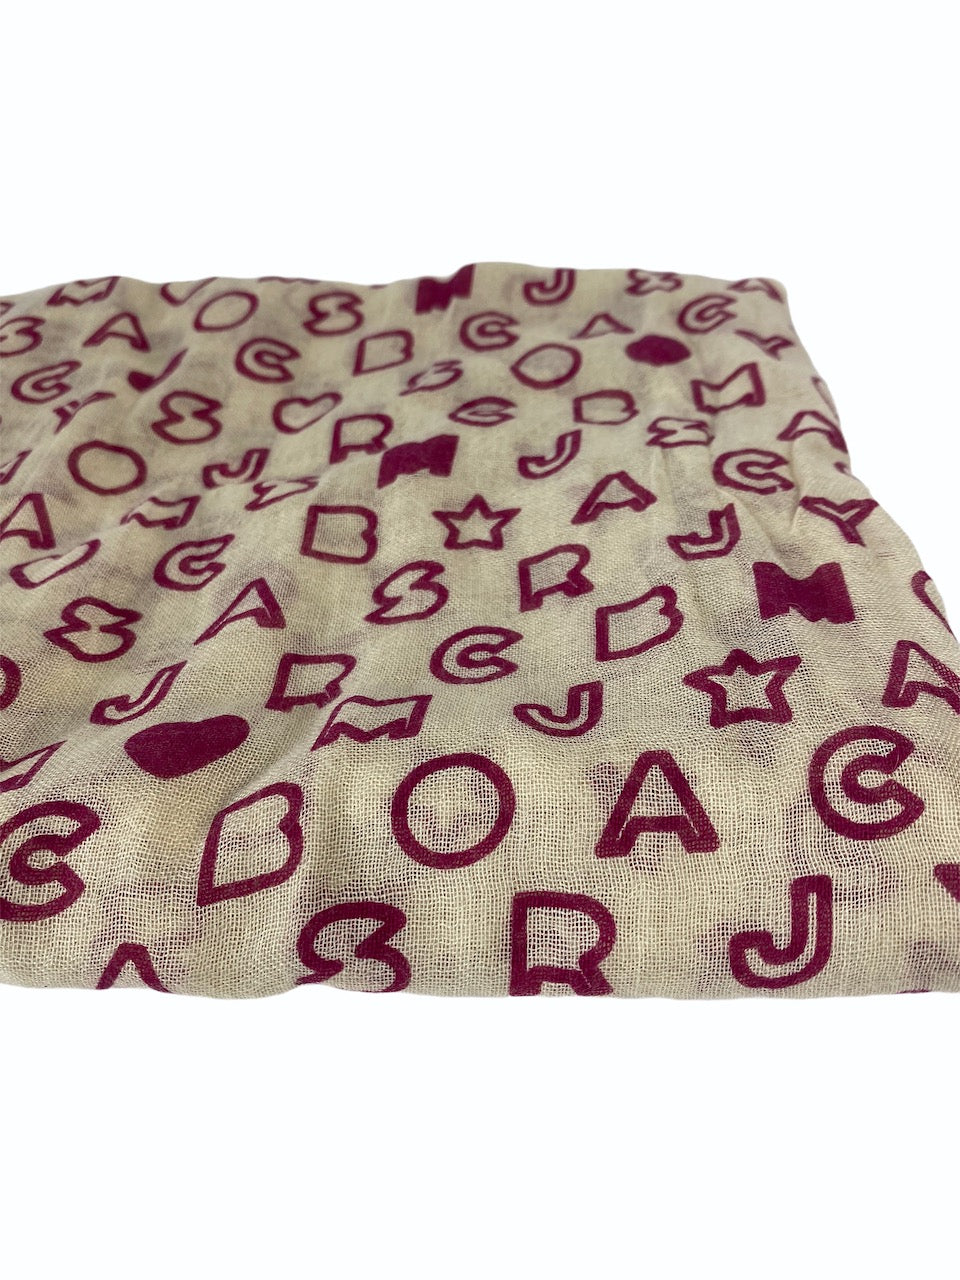 Marc Jacobs Cream Monogram Scarf - As Seen On Instagram 06/09/2020